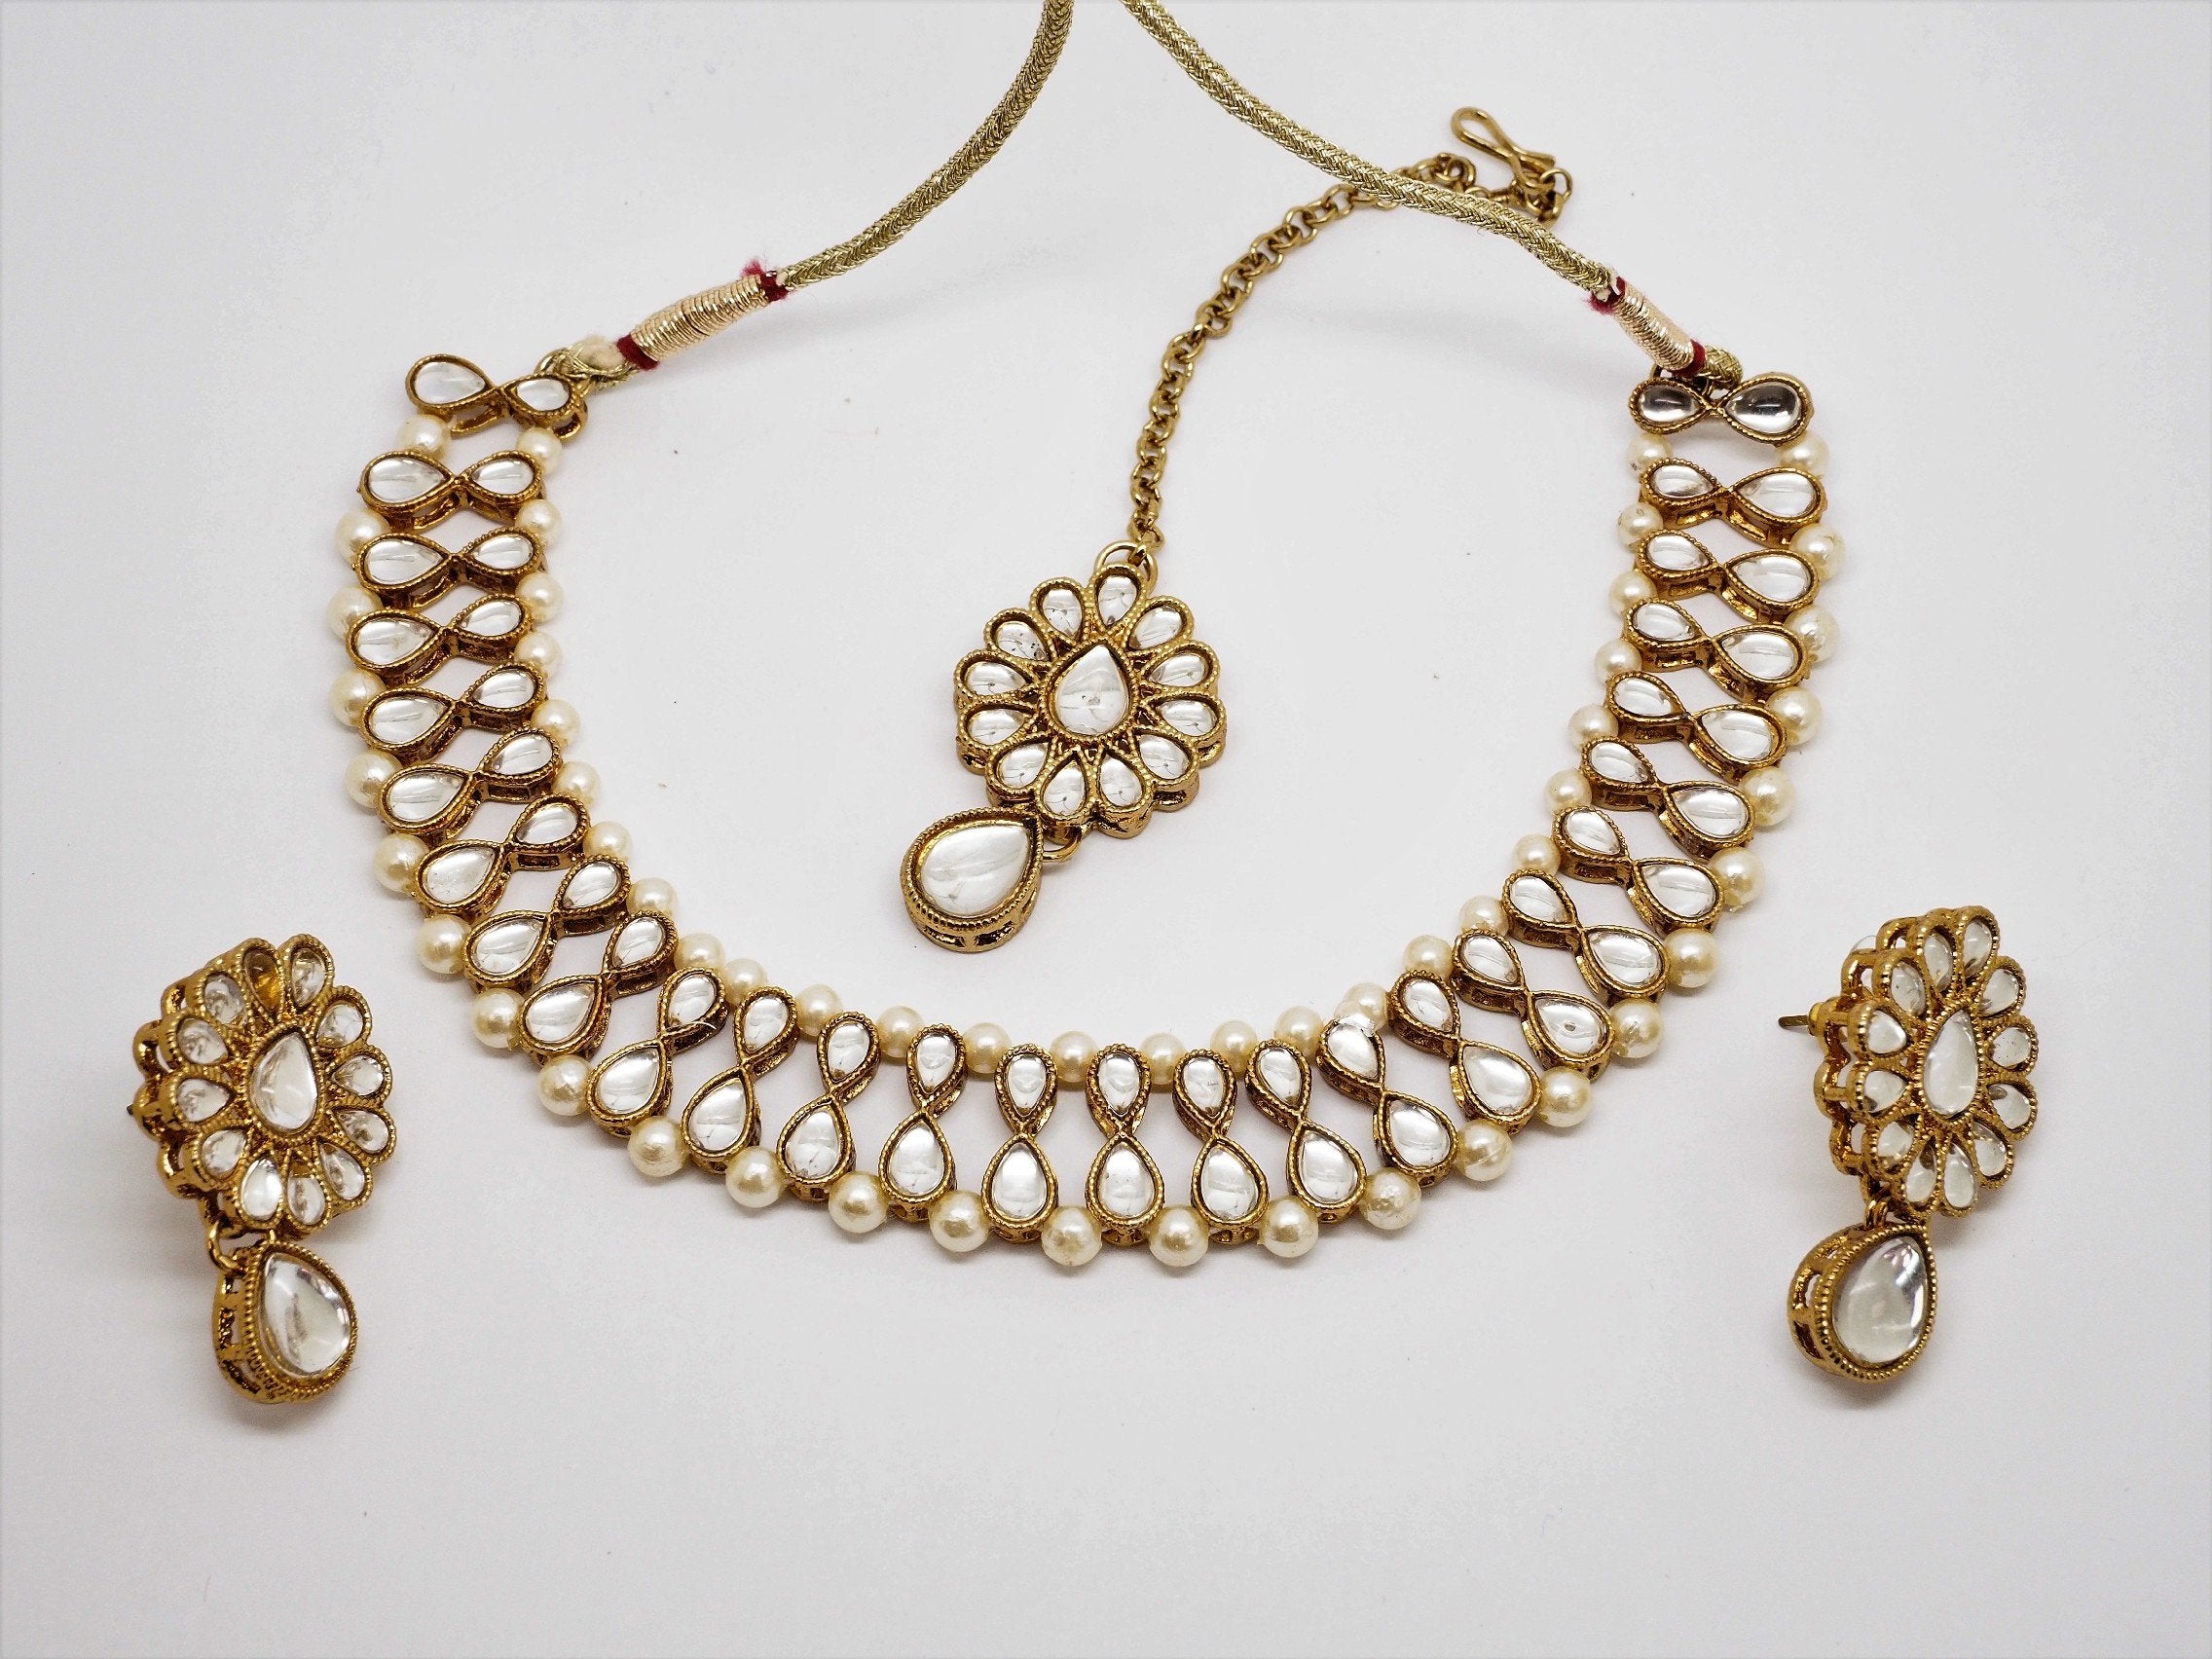 Bollywood Necklace set - Many Colours - Weddings - JIG1541 J0919 - Prachy Creations